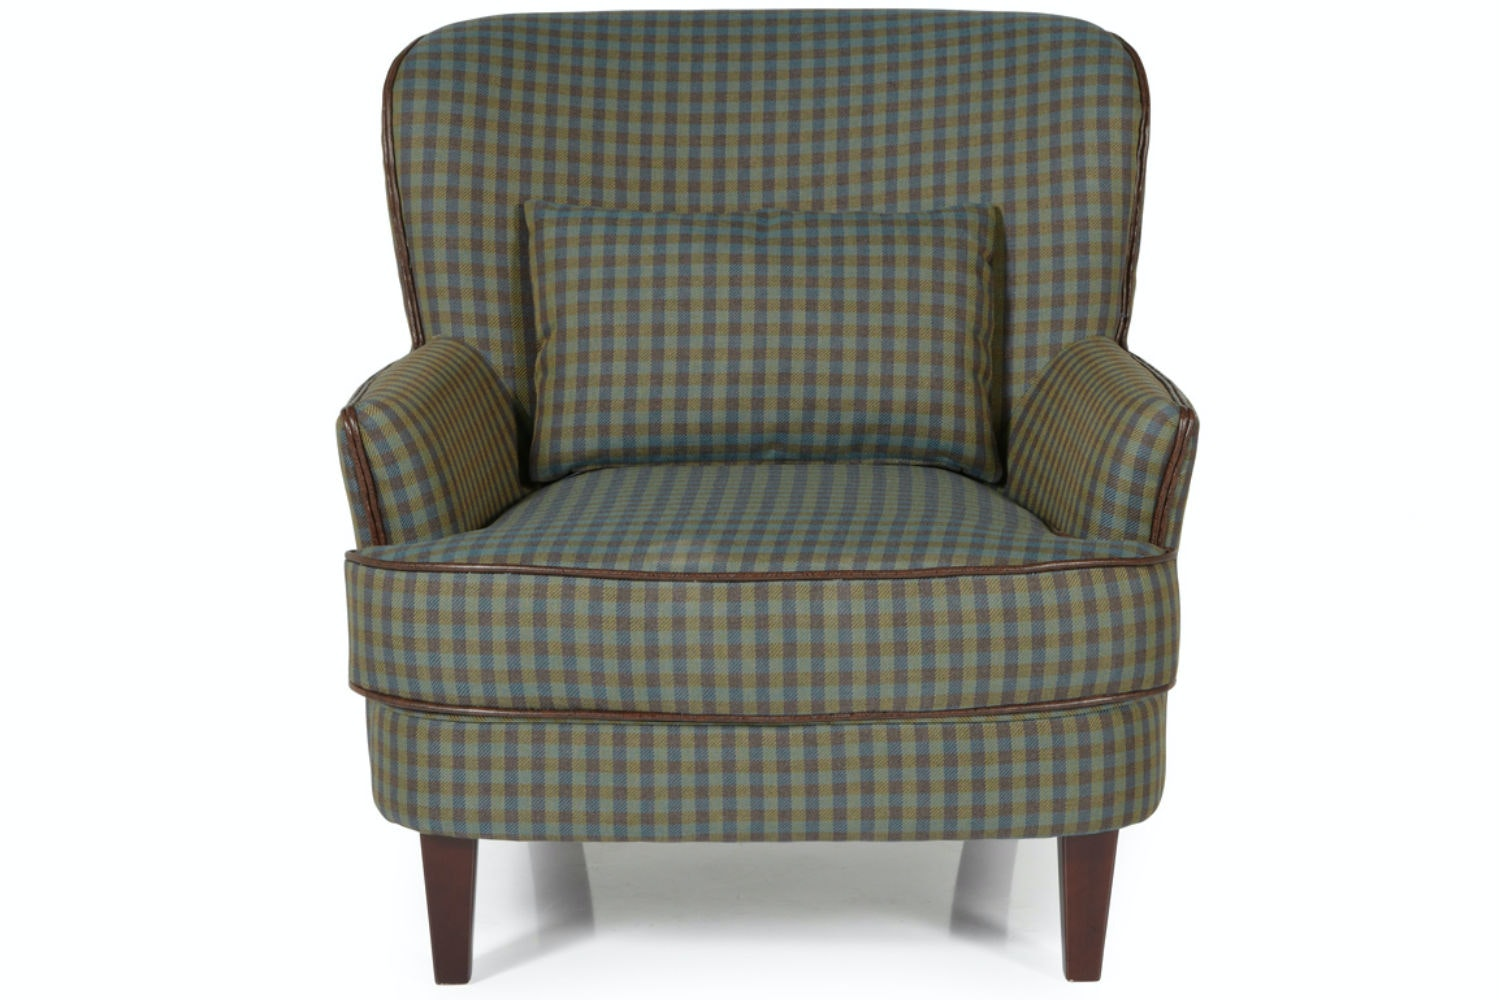 Trafalgar Bedroom Chair Green